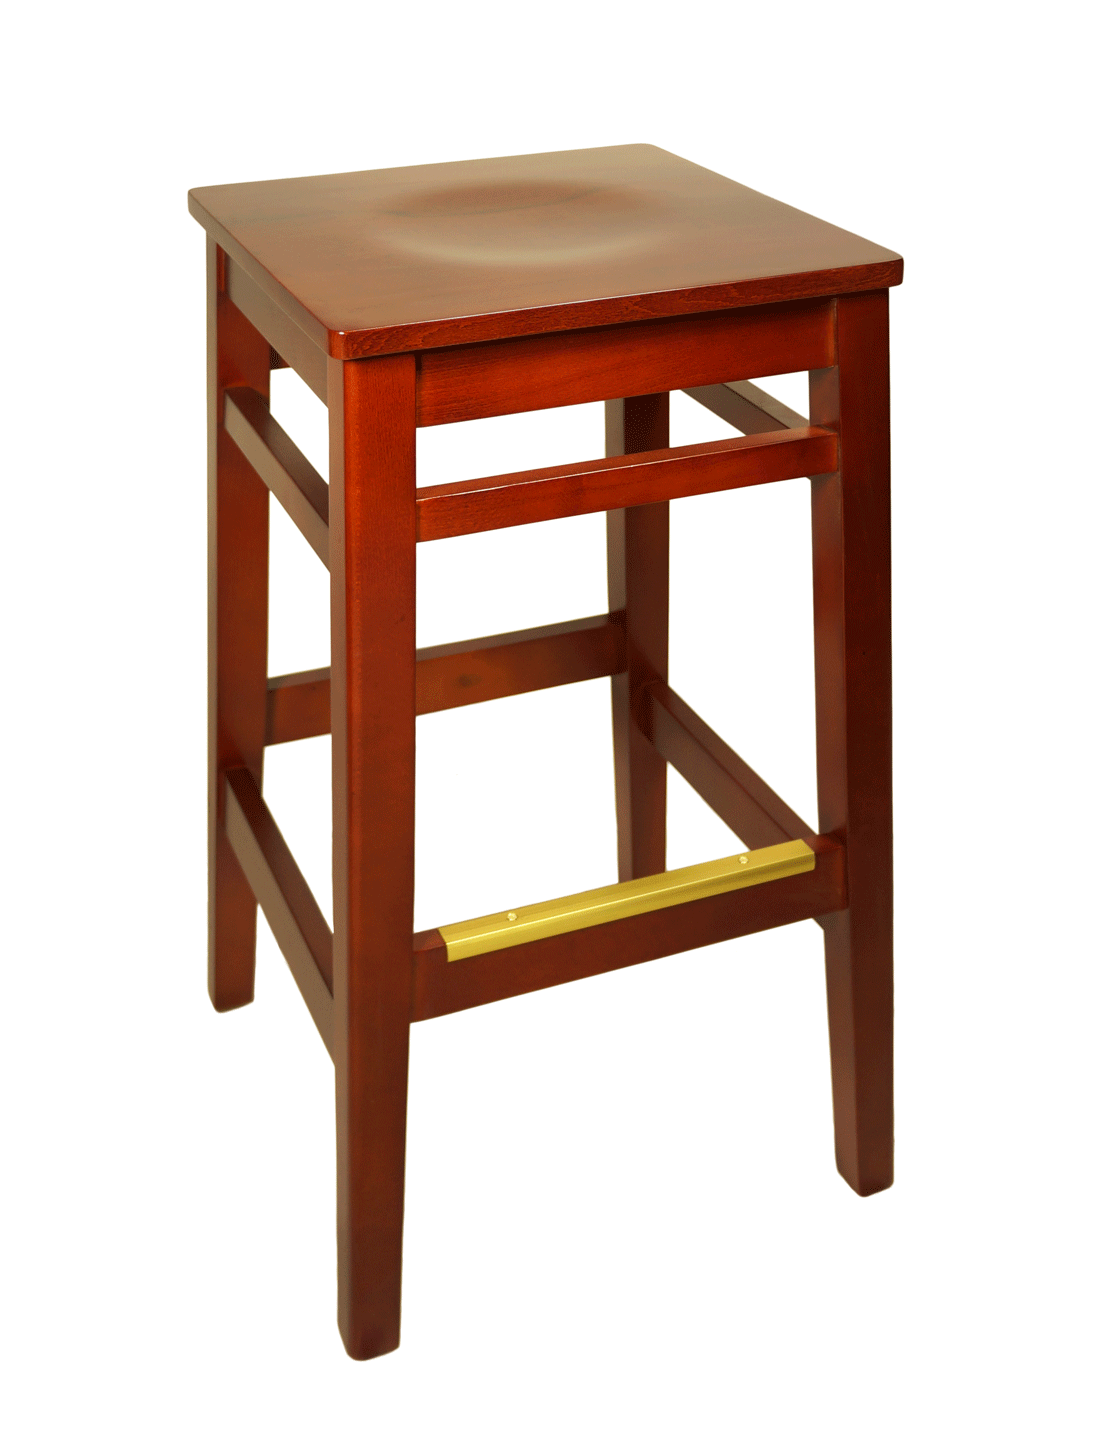 Trevor Backless Wood Bar Stool Millennium Seating USA  : LWB680CHCHW from www.millenniumseating.com size 1100 x 1448 png 215kB